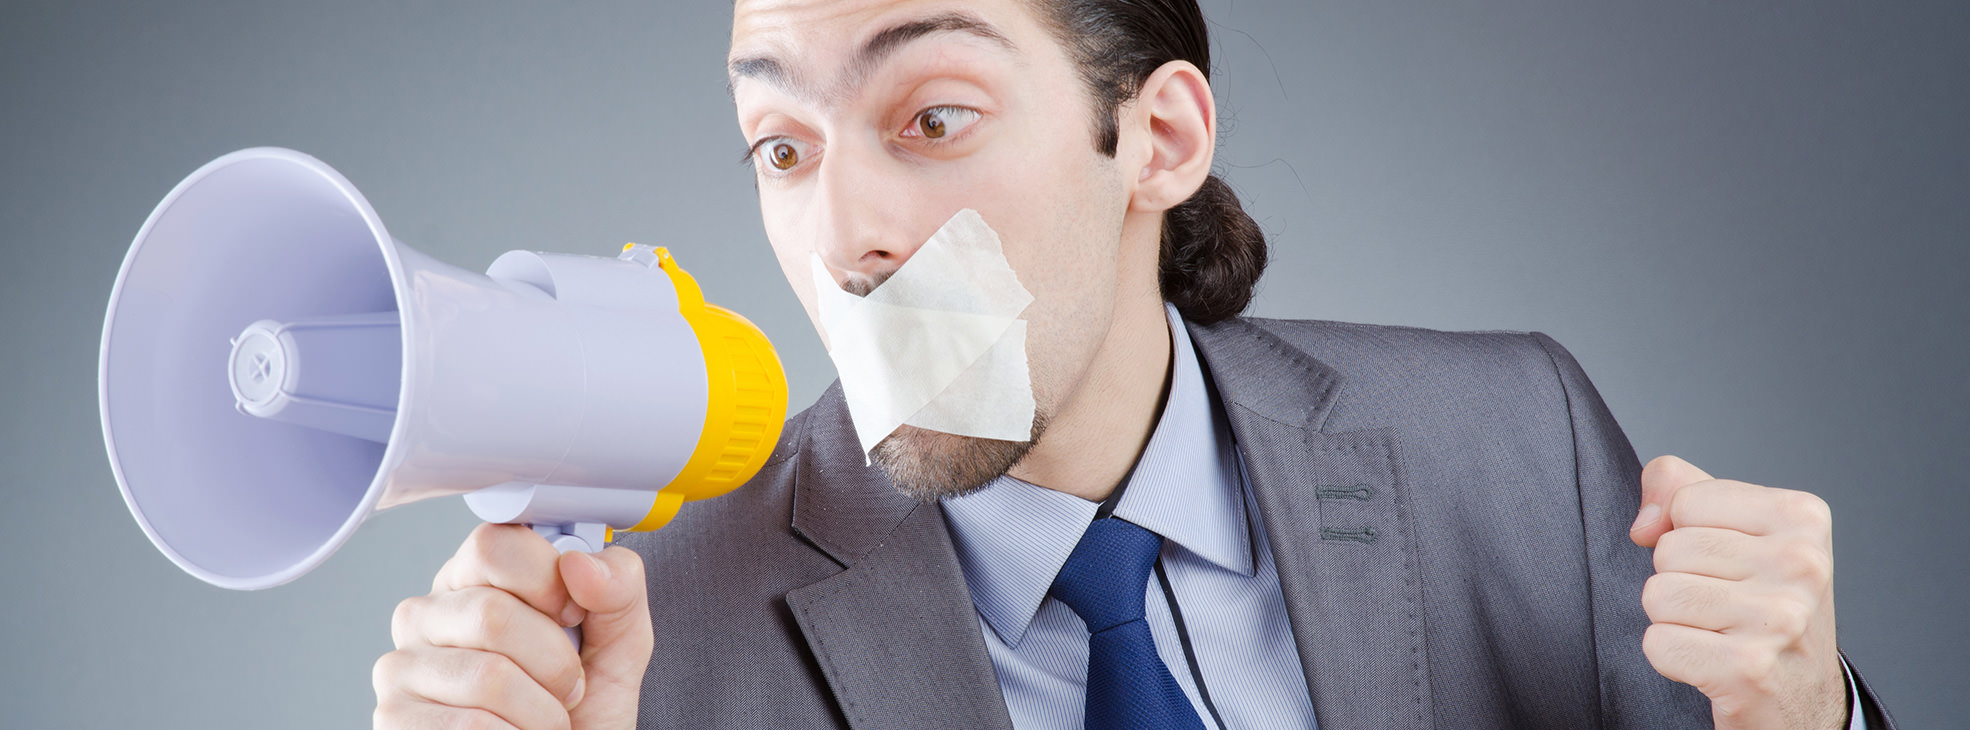 4 Surprising Facts about Wrongful Termination And Whistleblowing in Pasadena